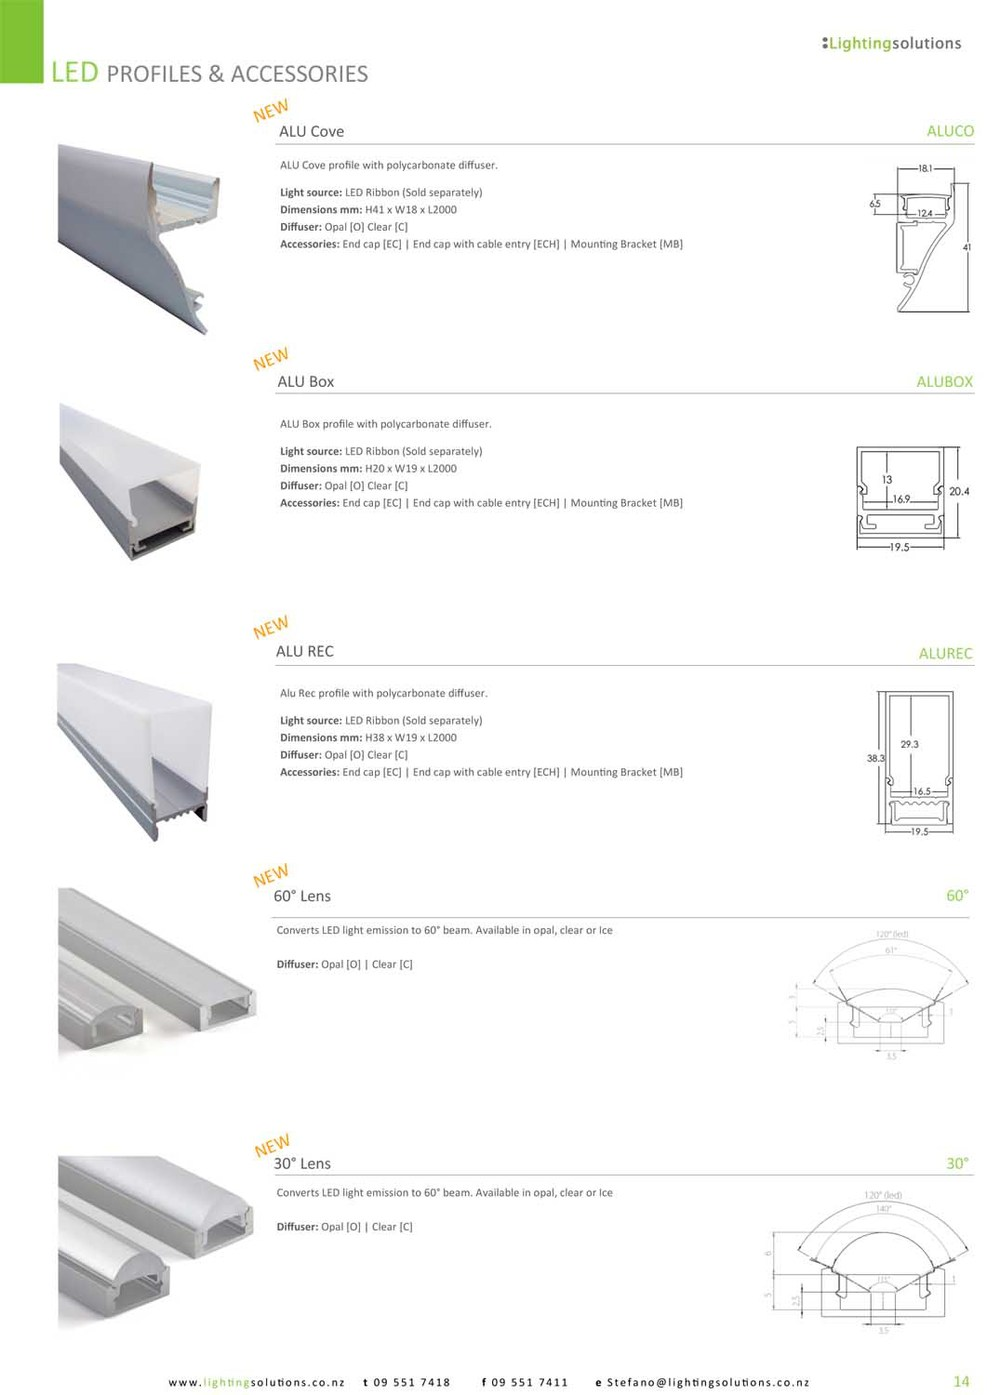 Lighting Solutions_LED Profiles-14.jpg